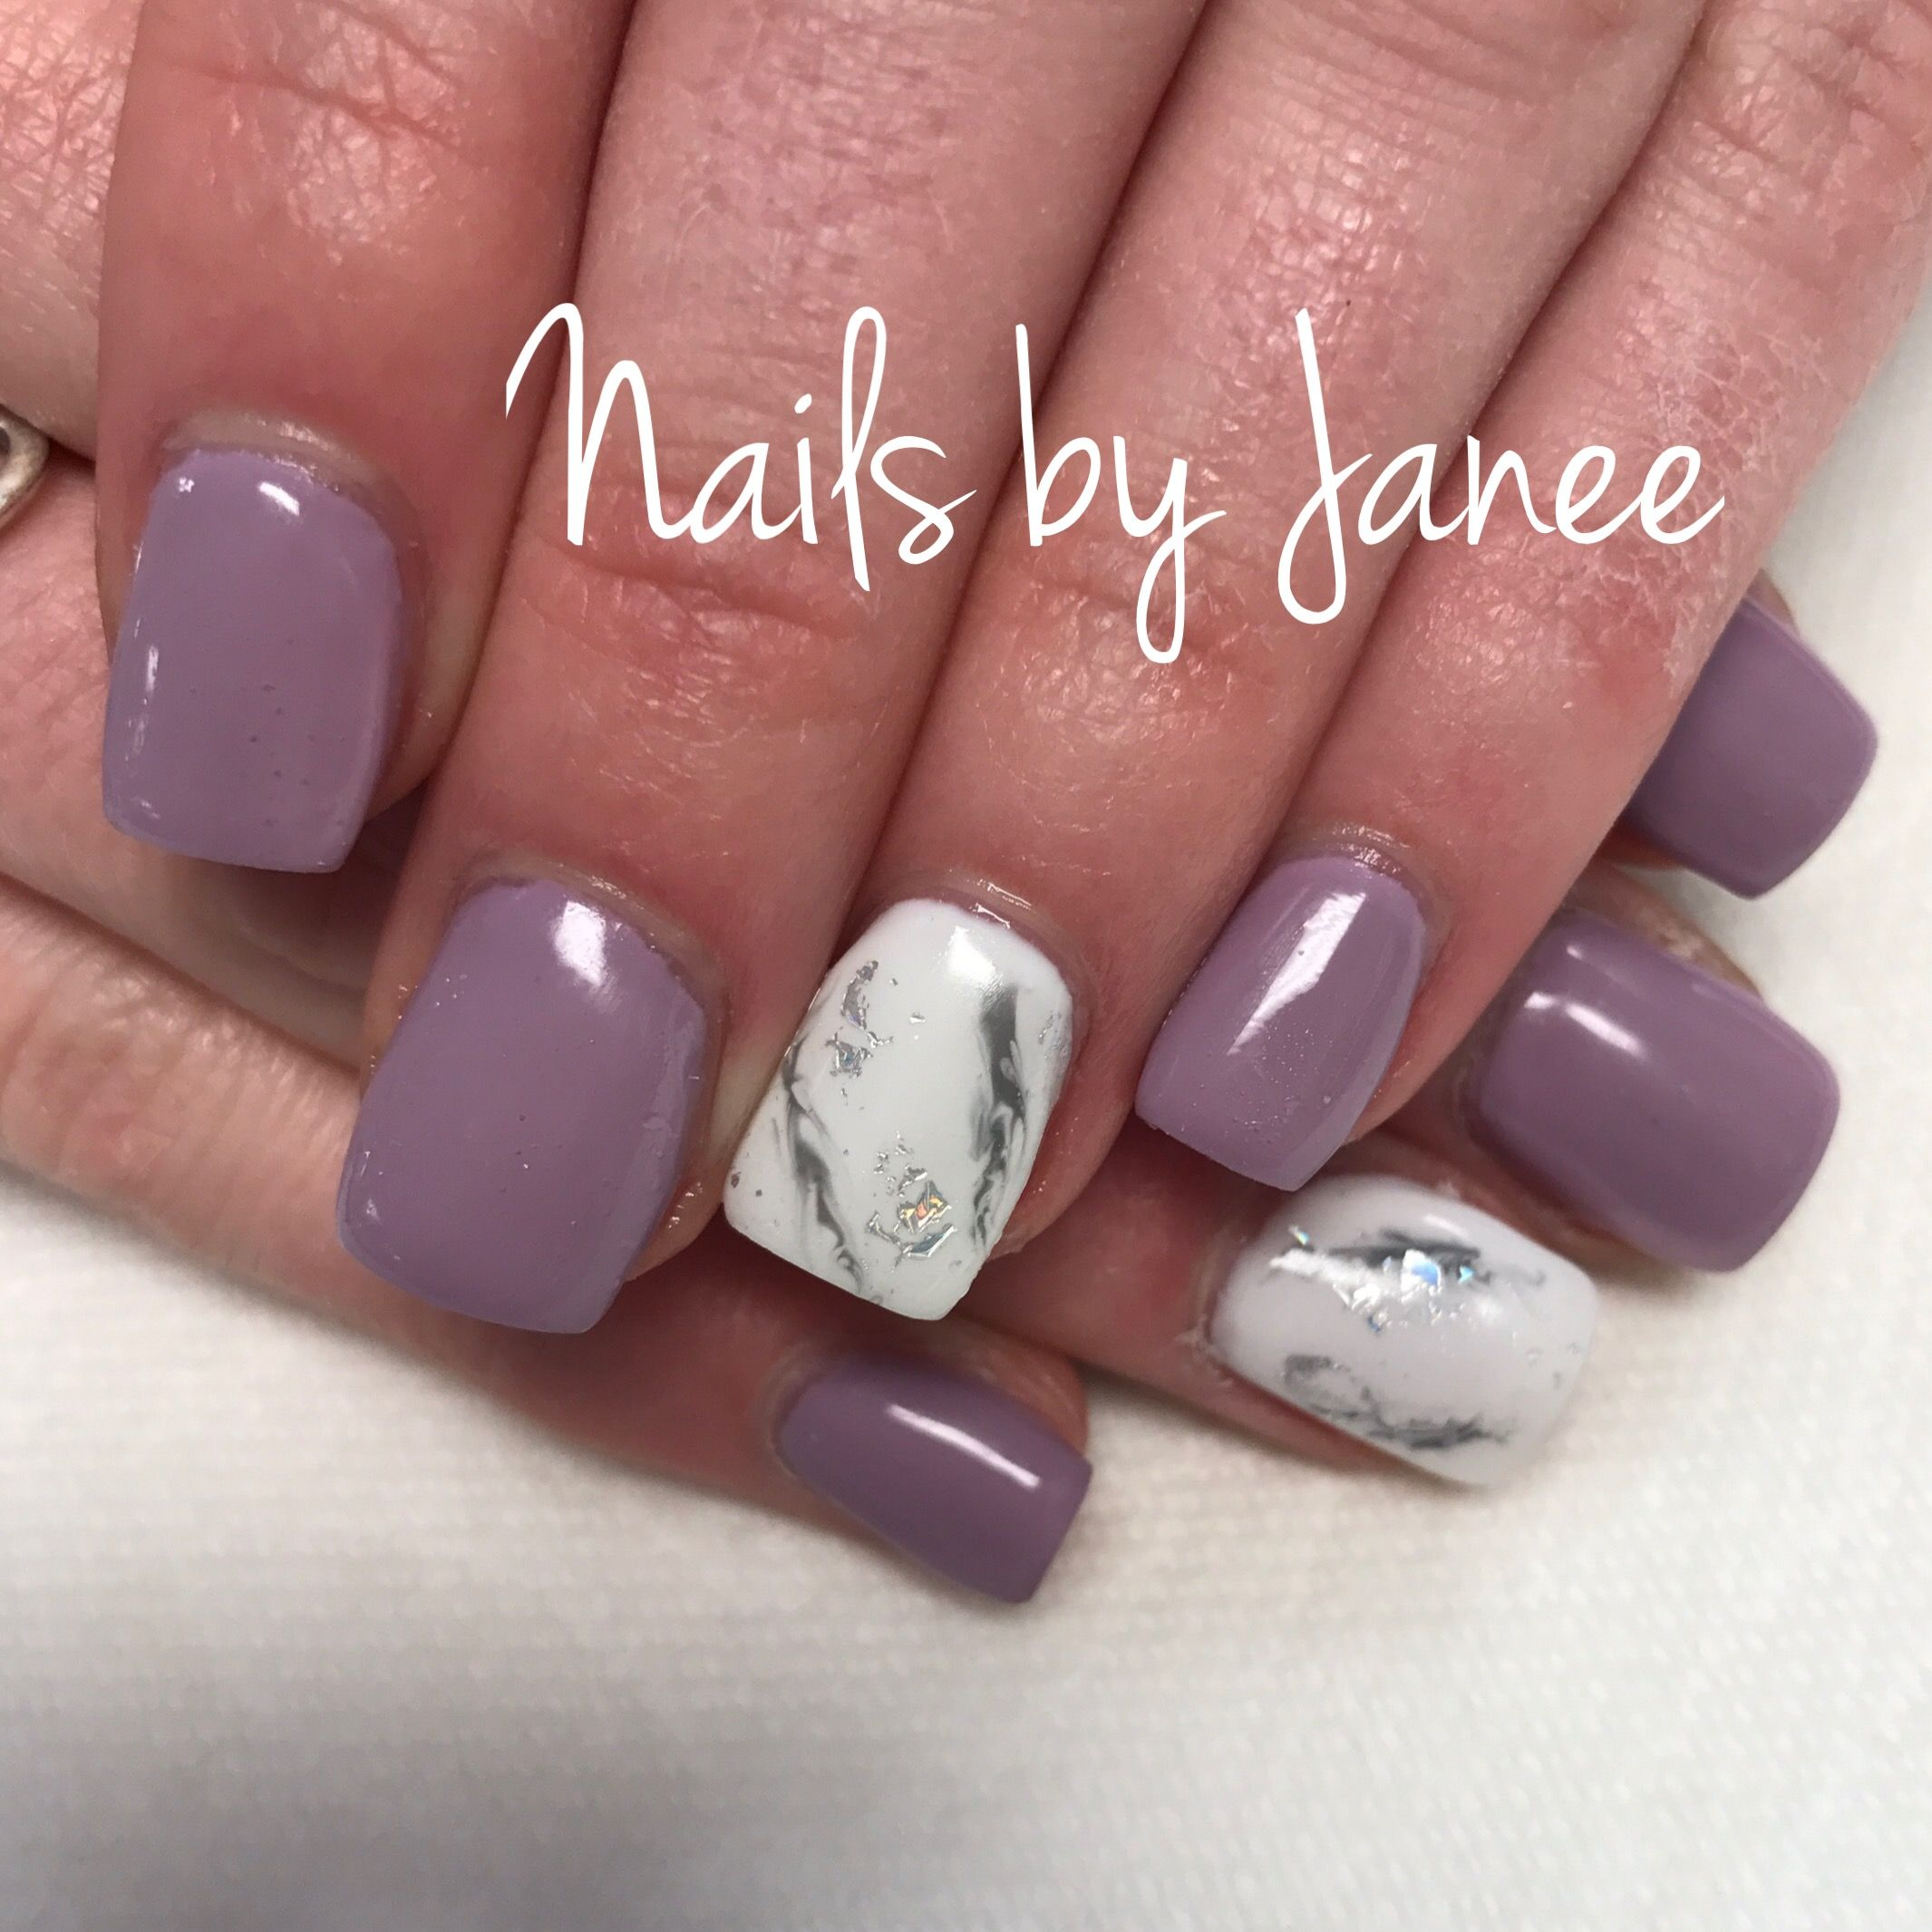 Unique Nv Nail Salon Elaboration - Nail Art Ideas - morihati.com